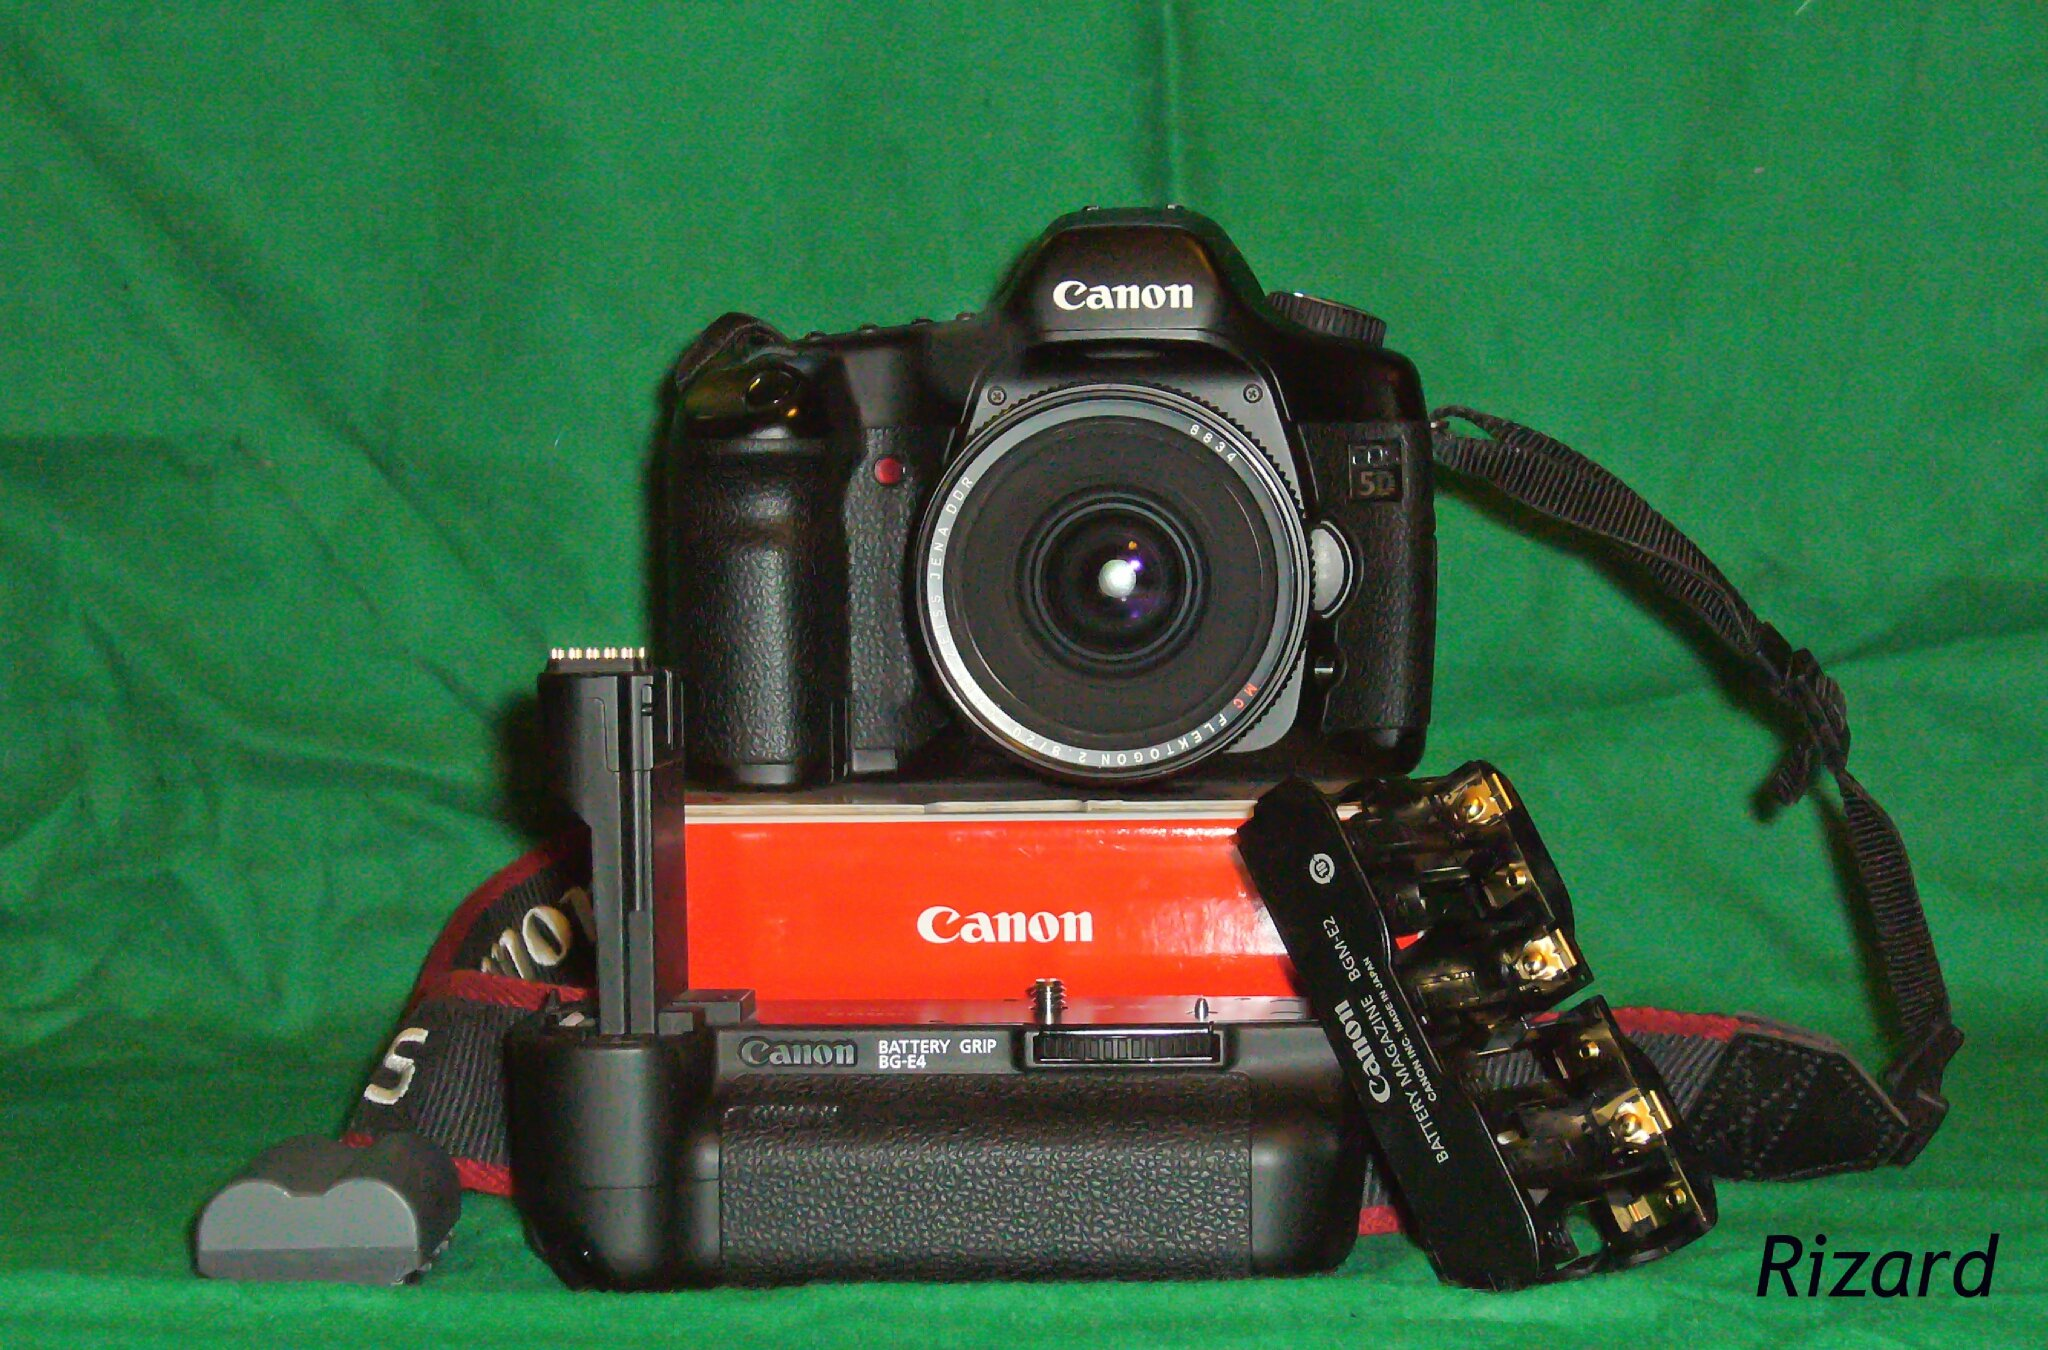 Canon Eos 5D version 1